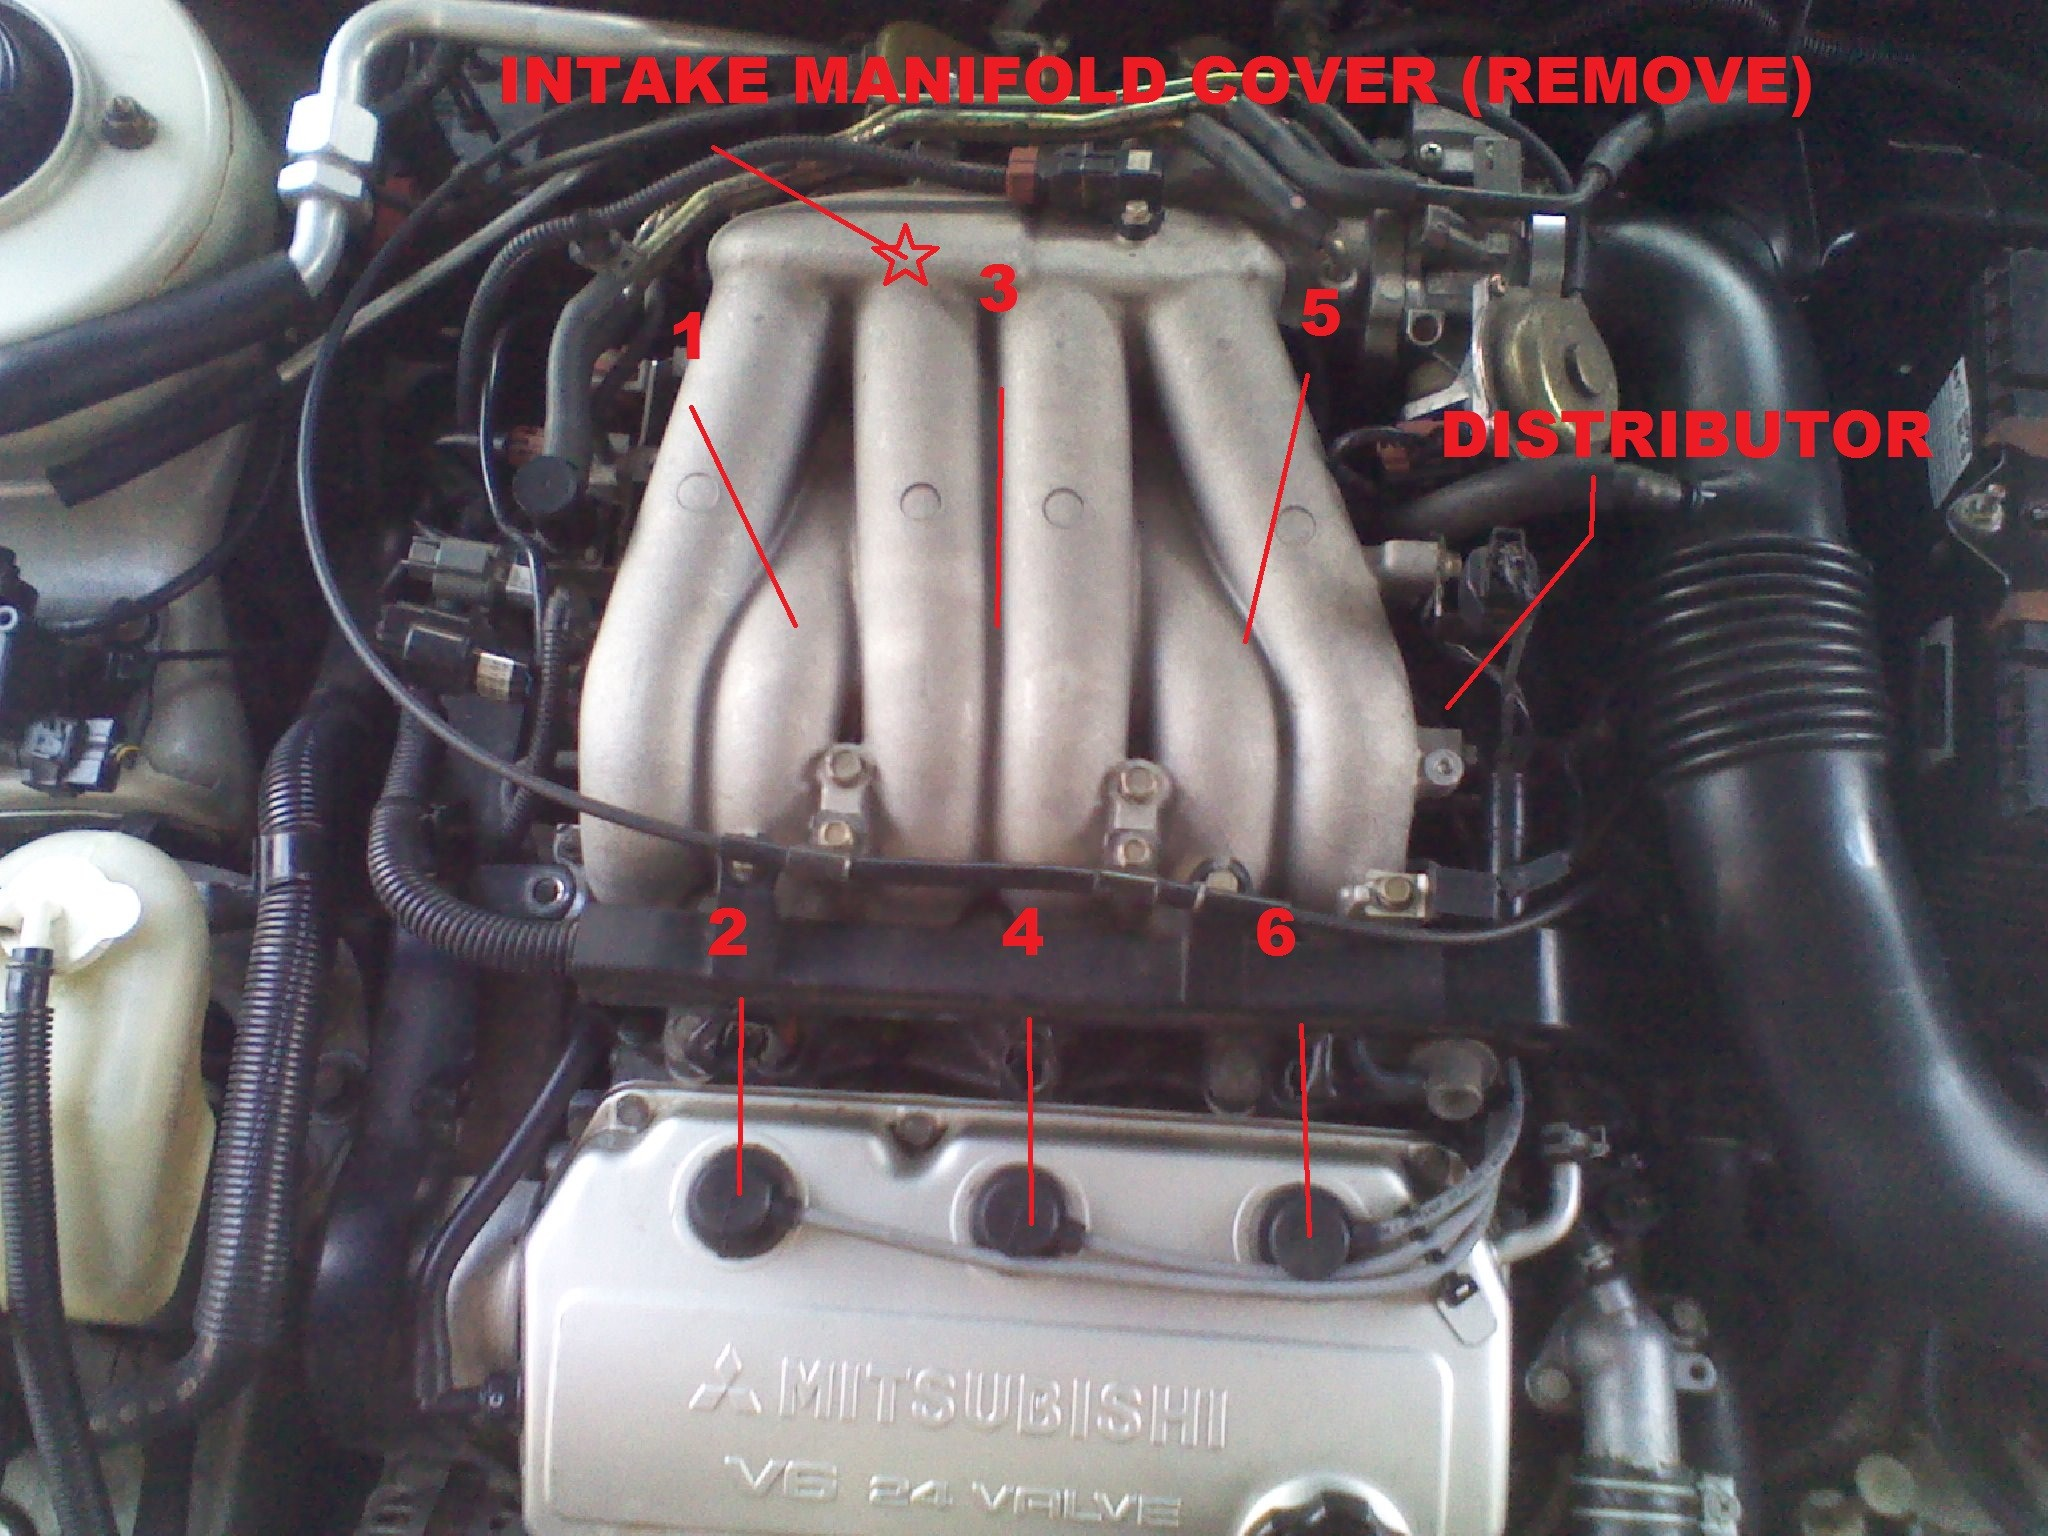 Mitsubishi 4g93 Wiring Diagram Not Lossing 2000 Engine U2022 For Free Pajero Io Gdi